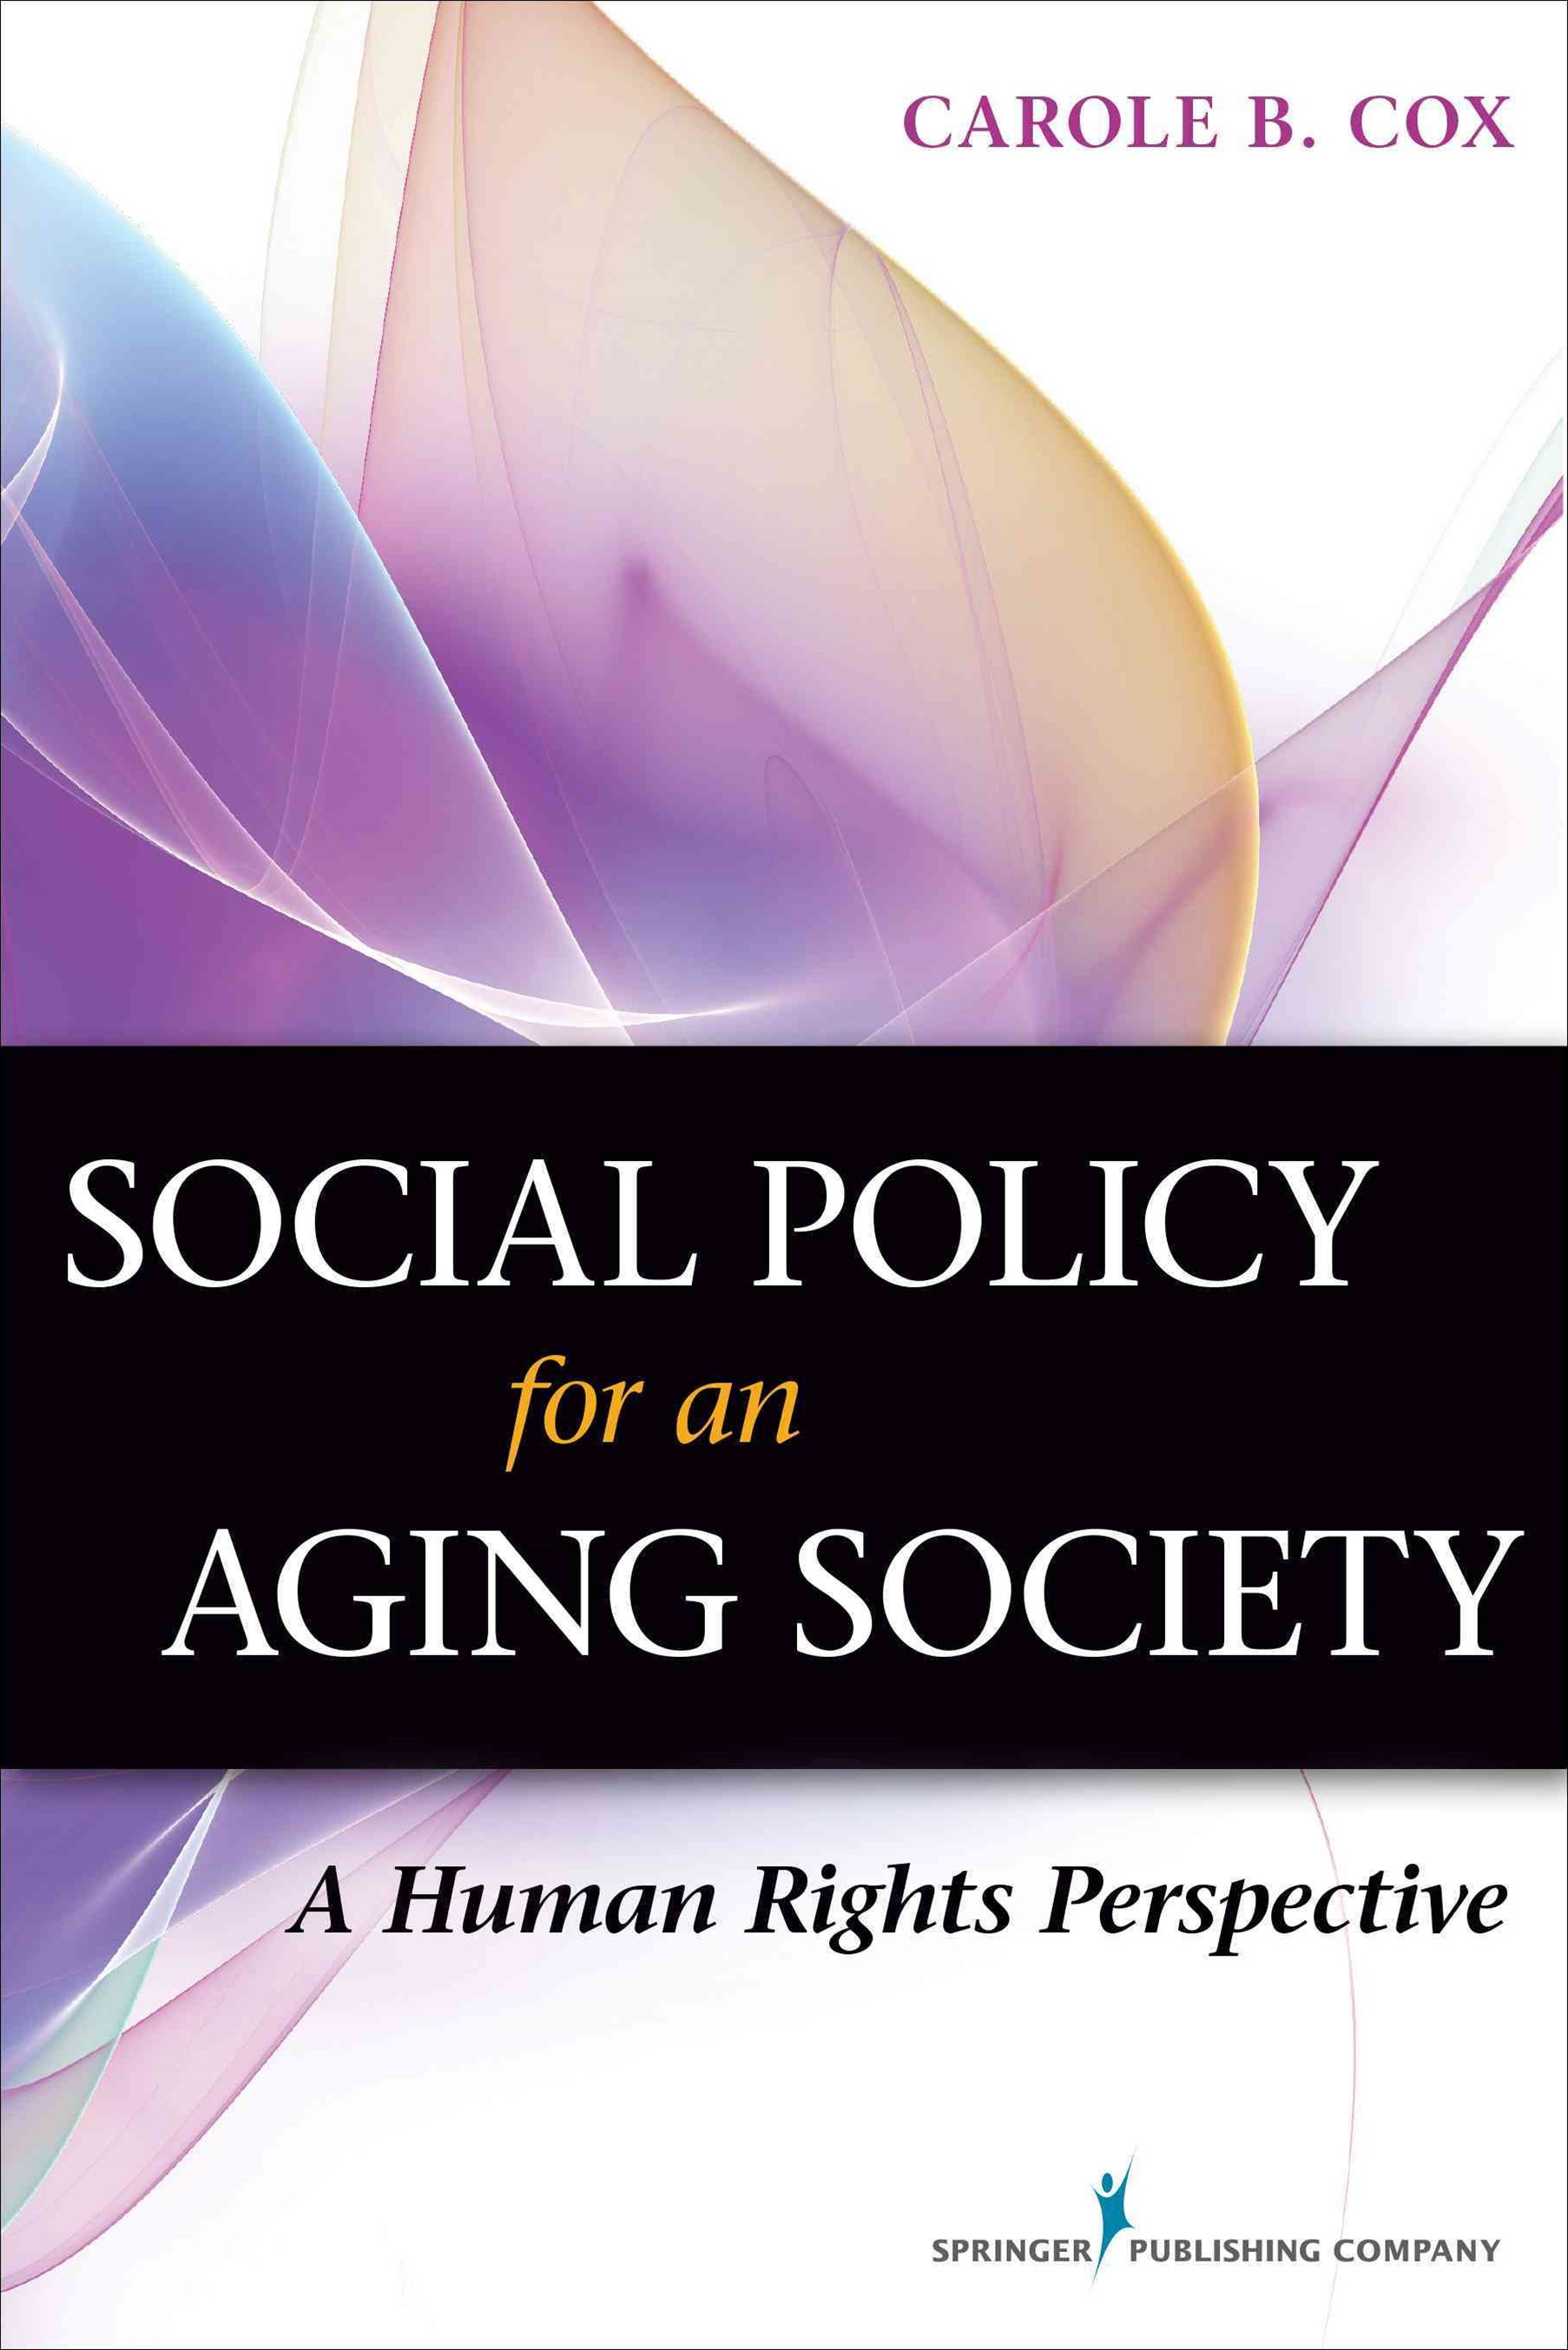 Social Policy for an Aging Society